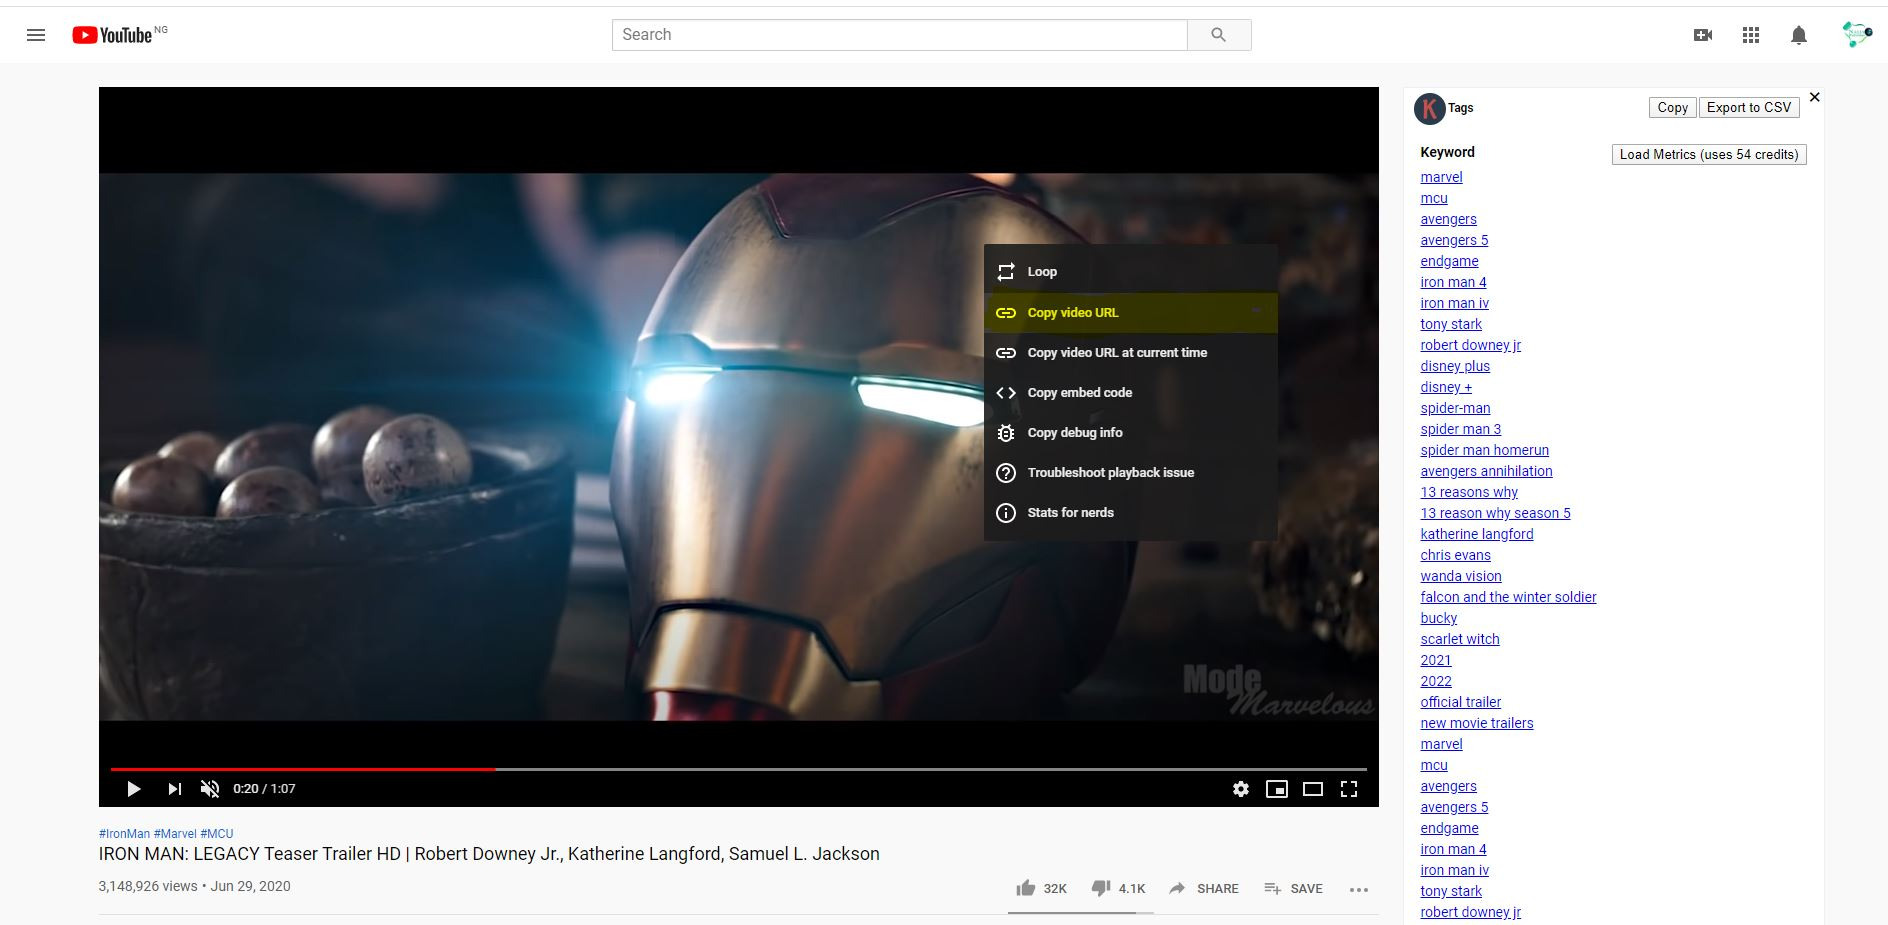 Download Youtube Videos To PC - Copy Video URL